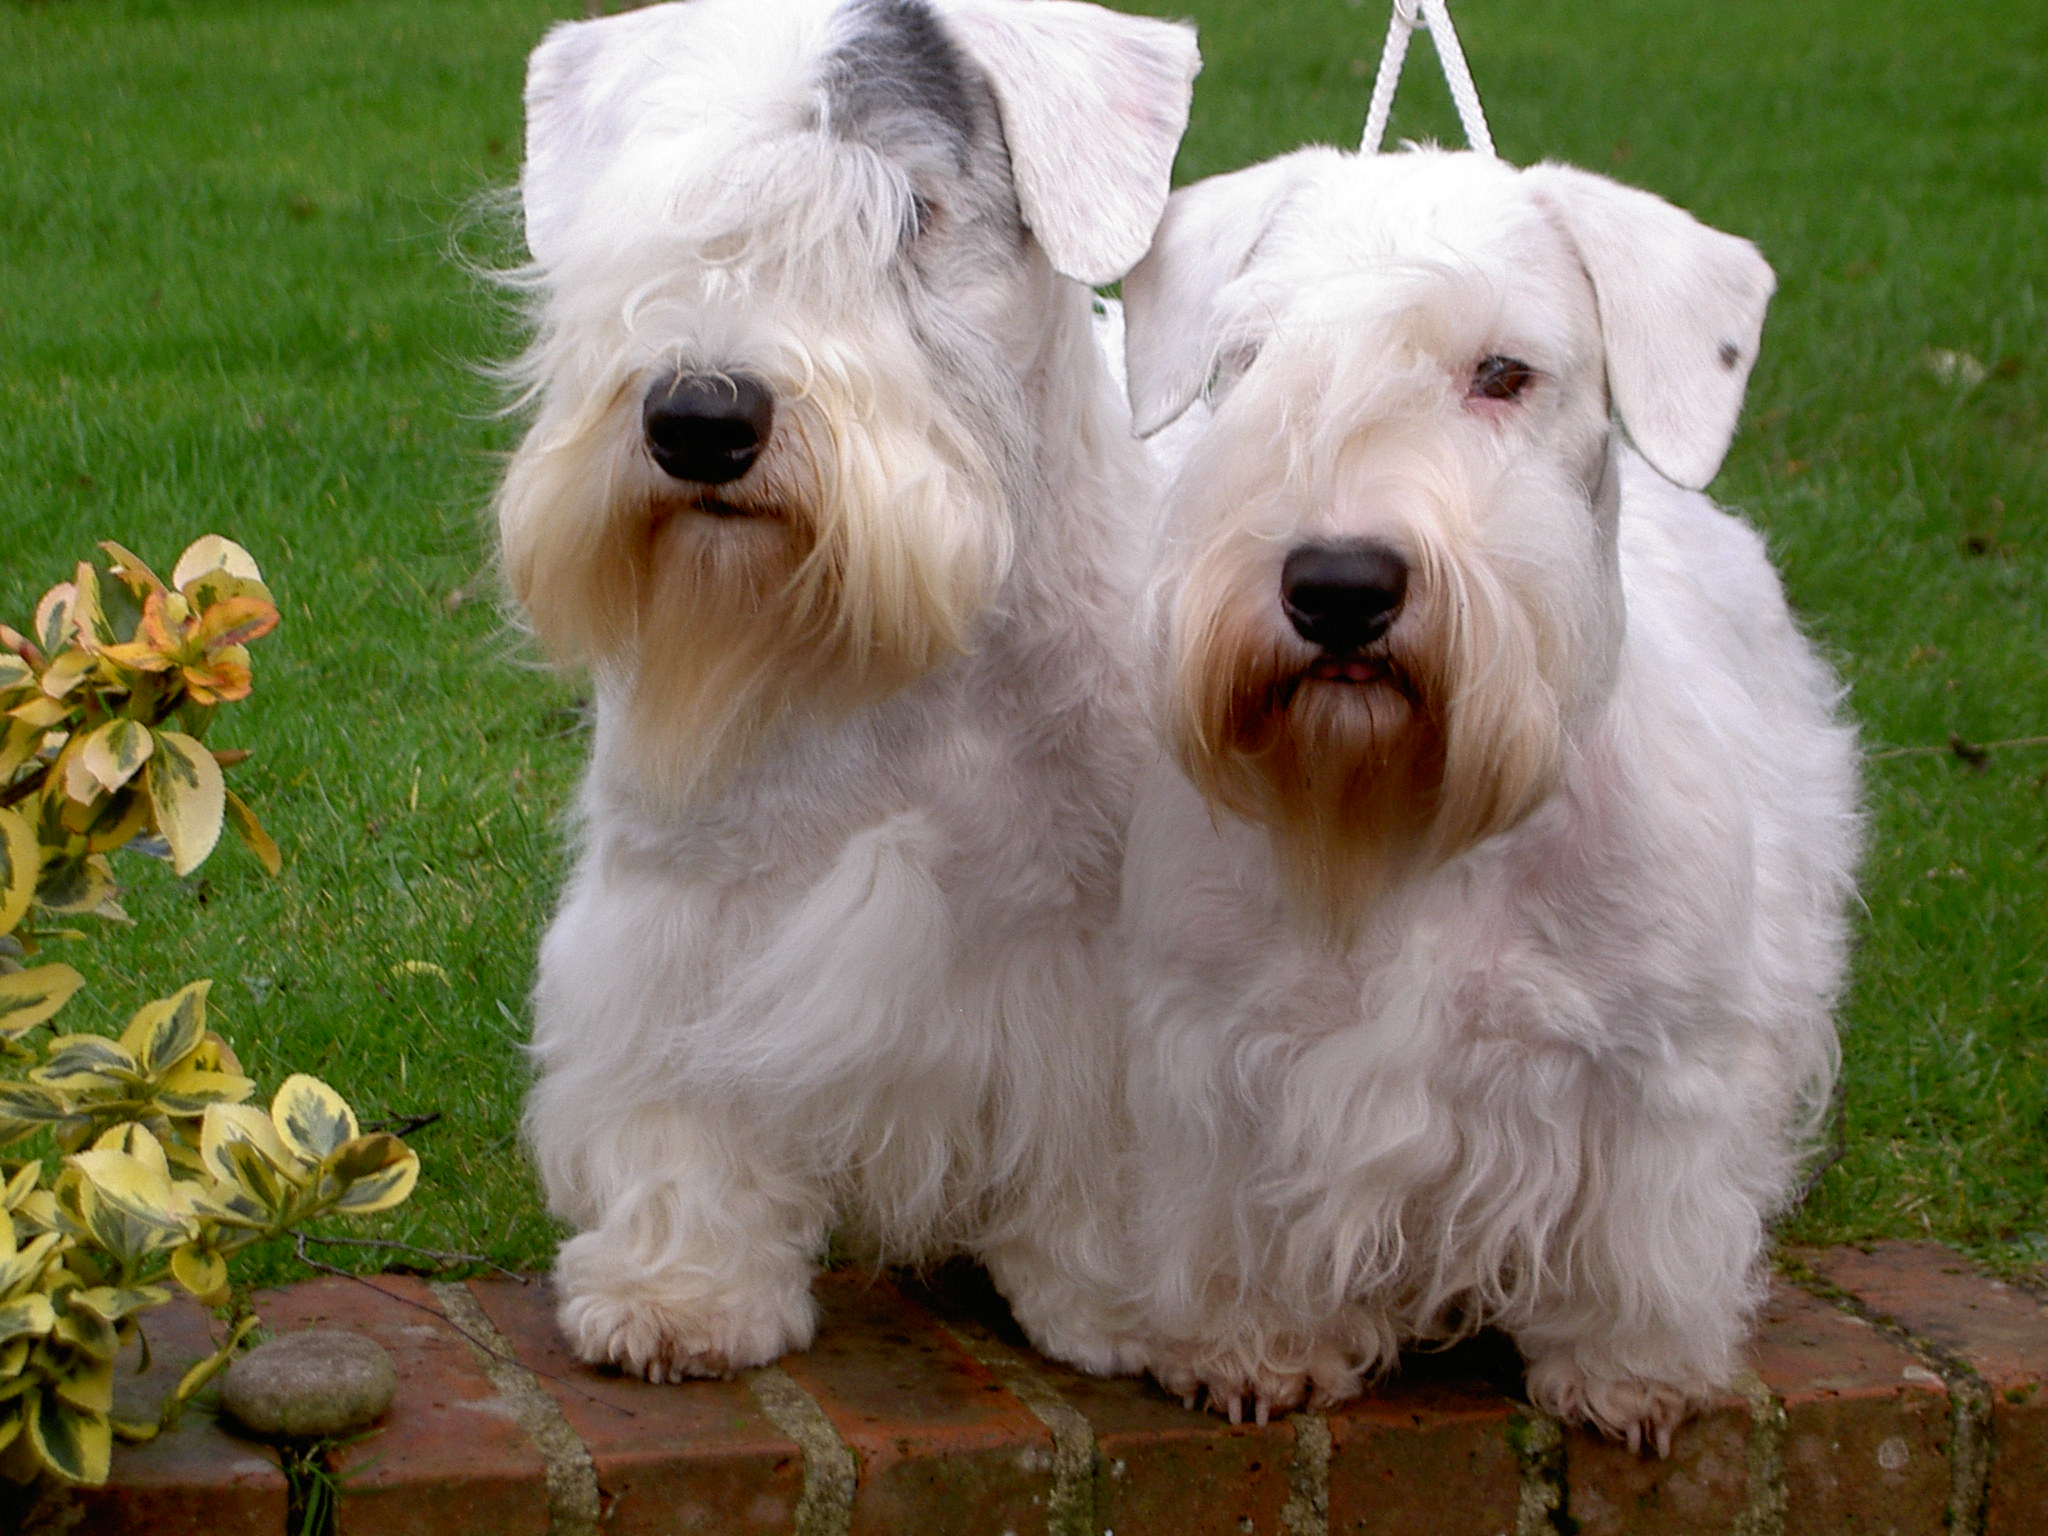 Cute Sealyham Terrier dogs wallpaper